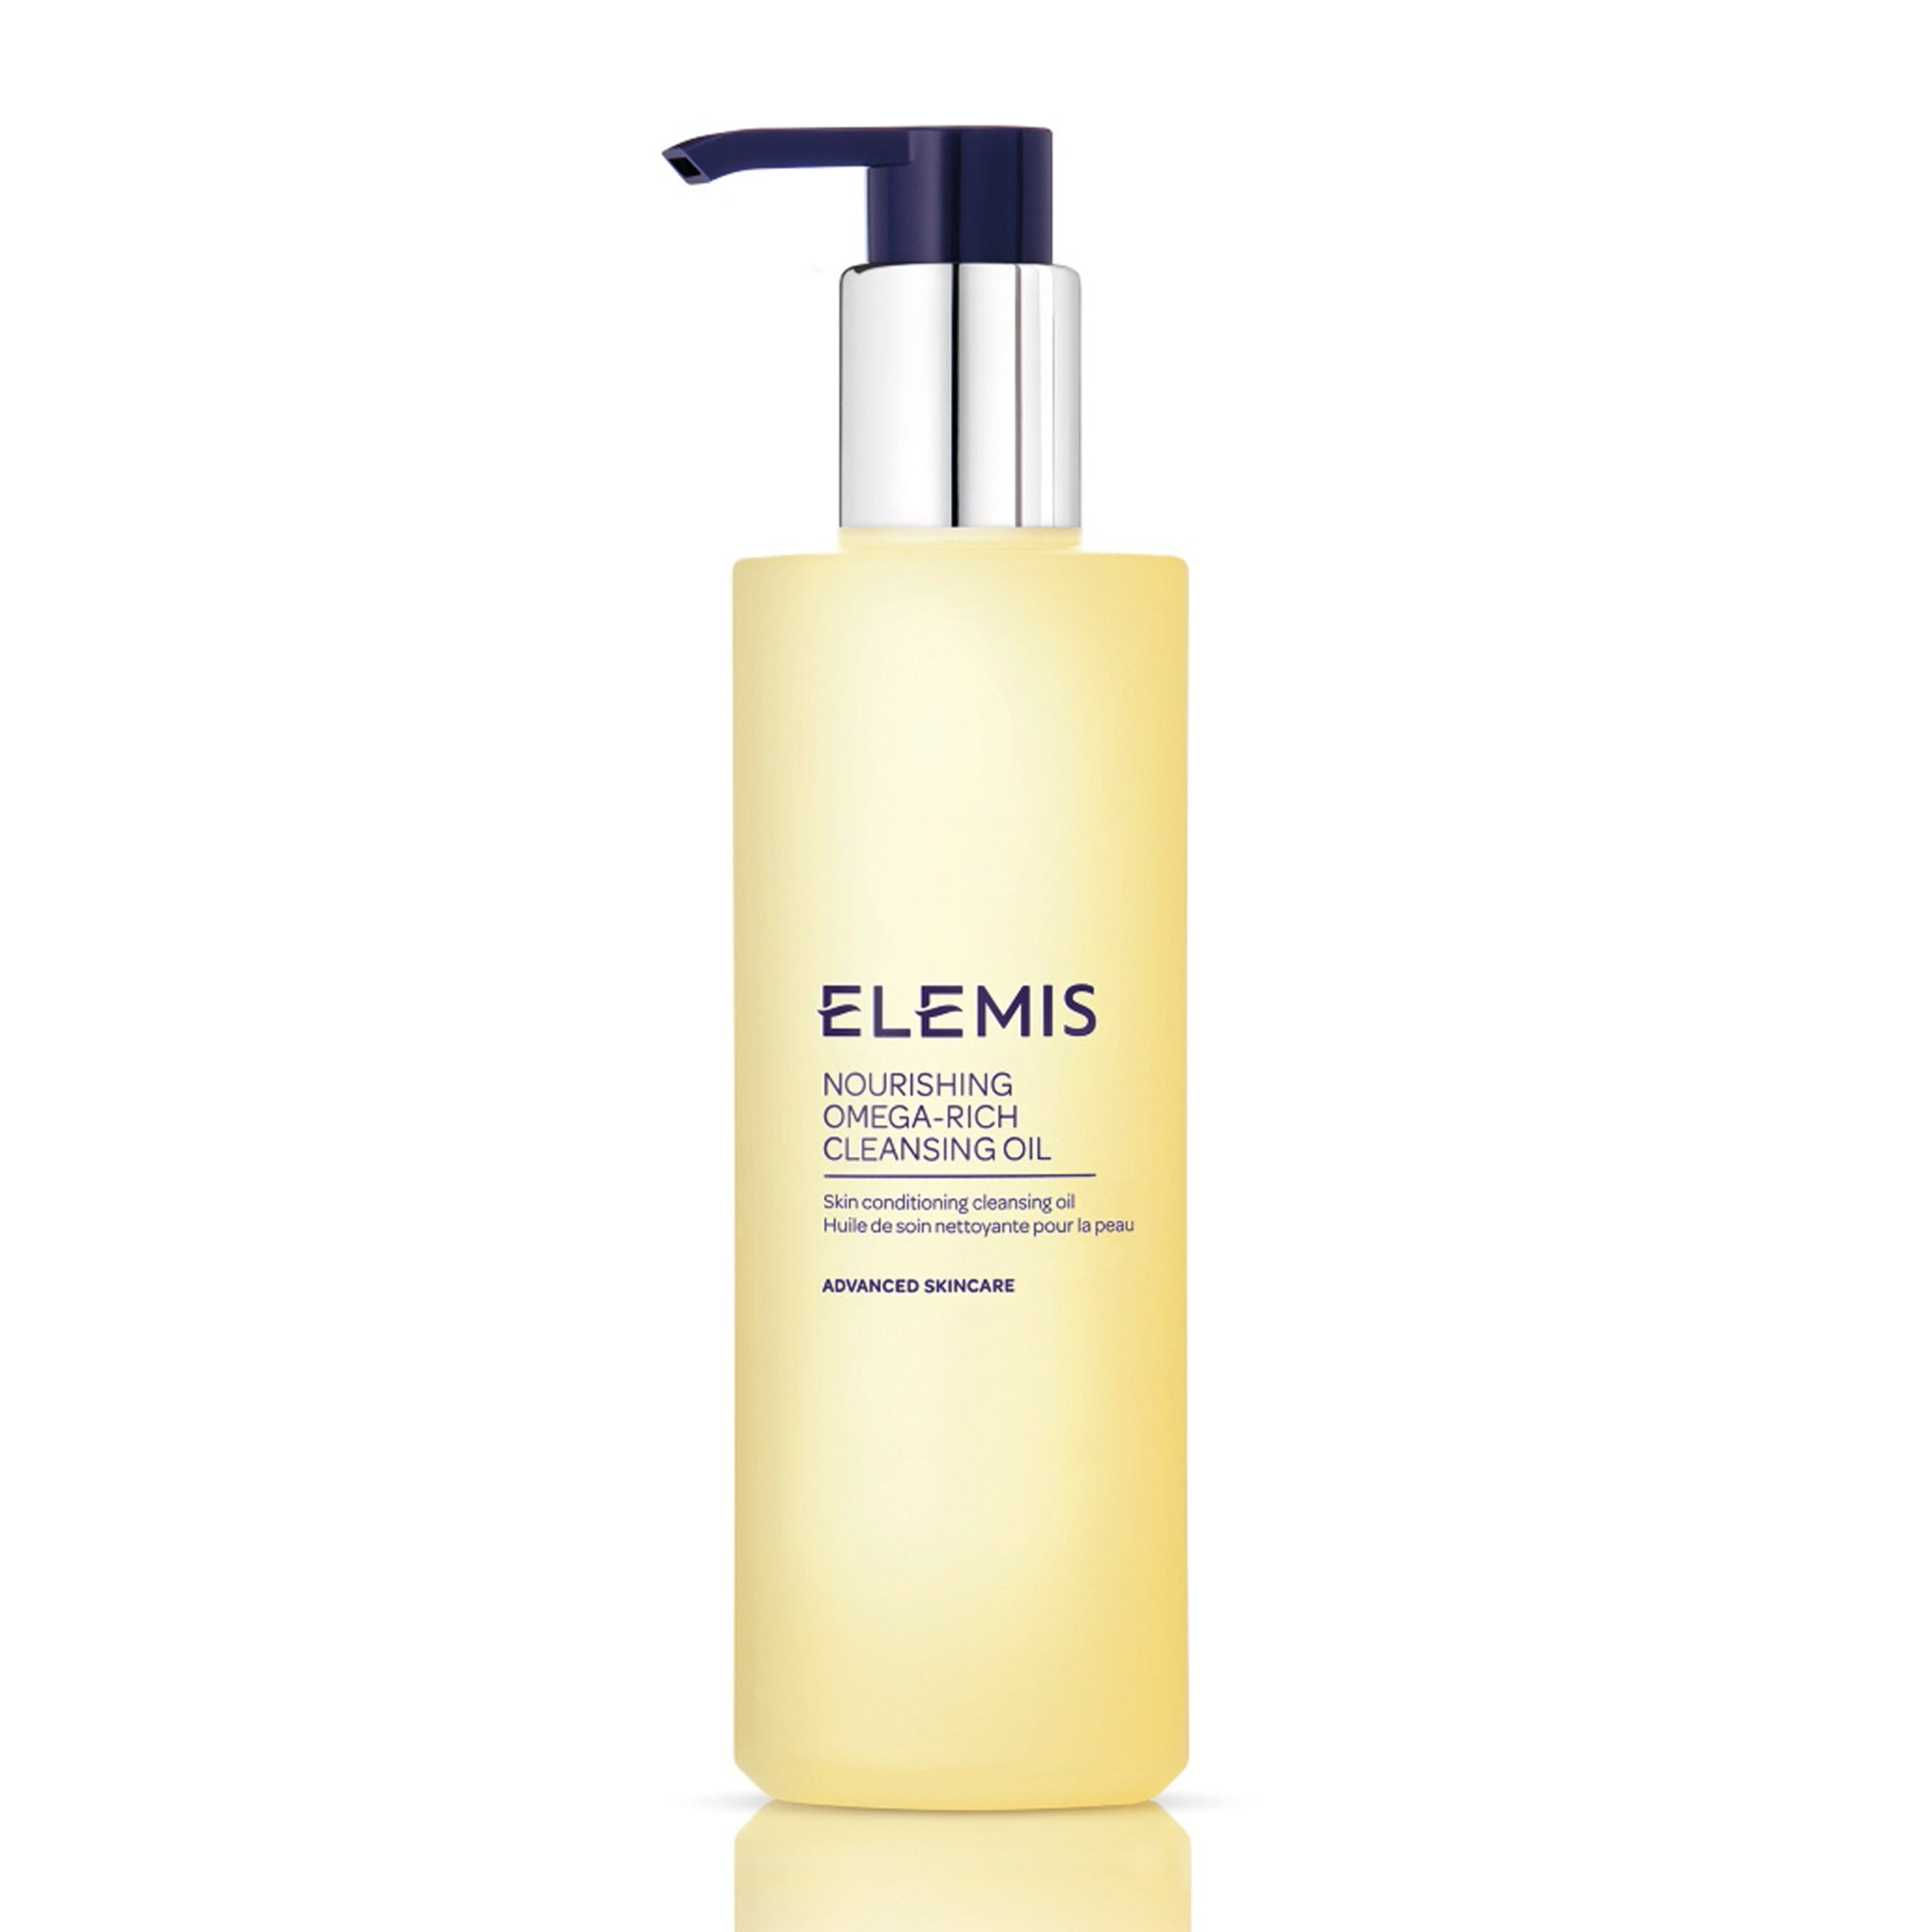 Nourishing Omega-Rich Cleansing Oil 195g